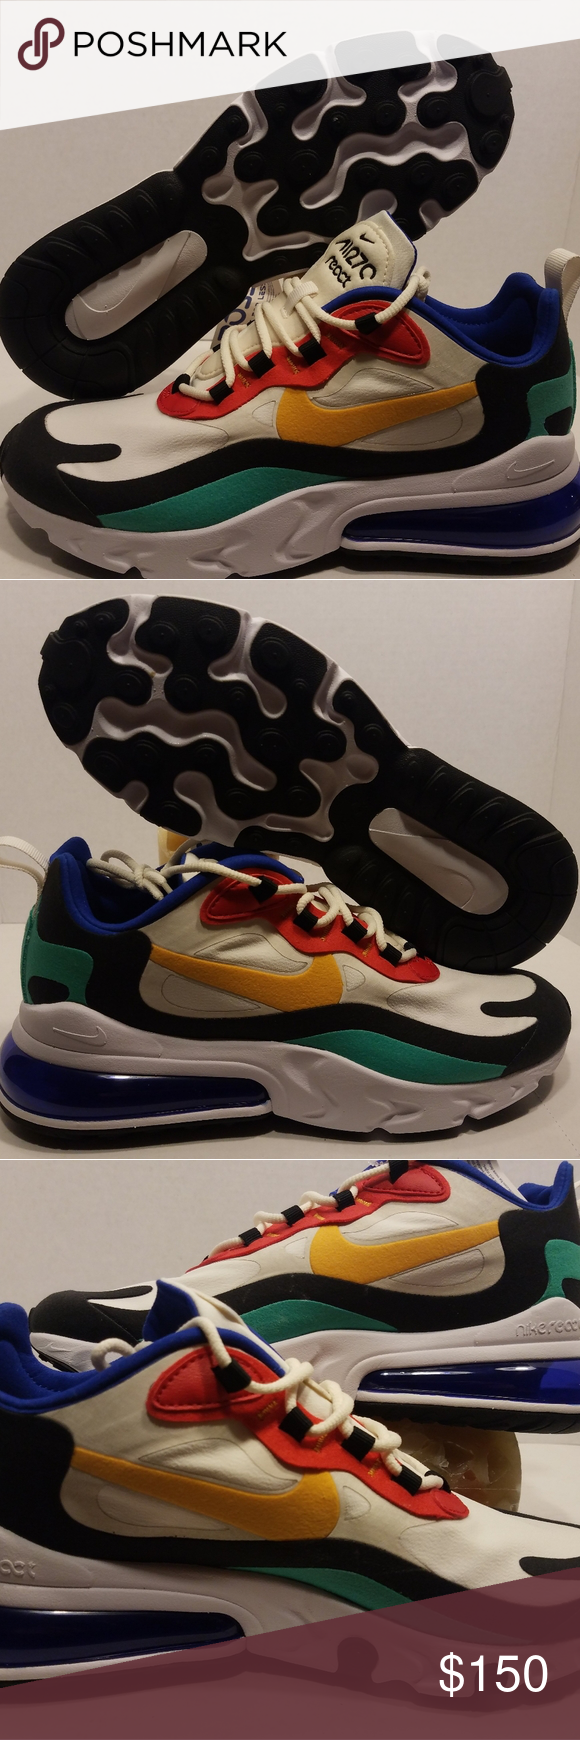 Details about Nike Air Max 270 React 'Bauhaus' Men's Size 8 Airmax Phantom GoldRed AO4971 002